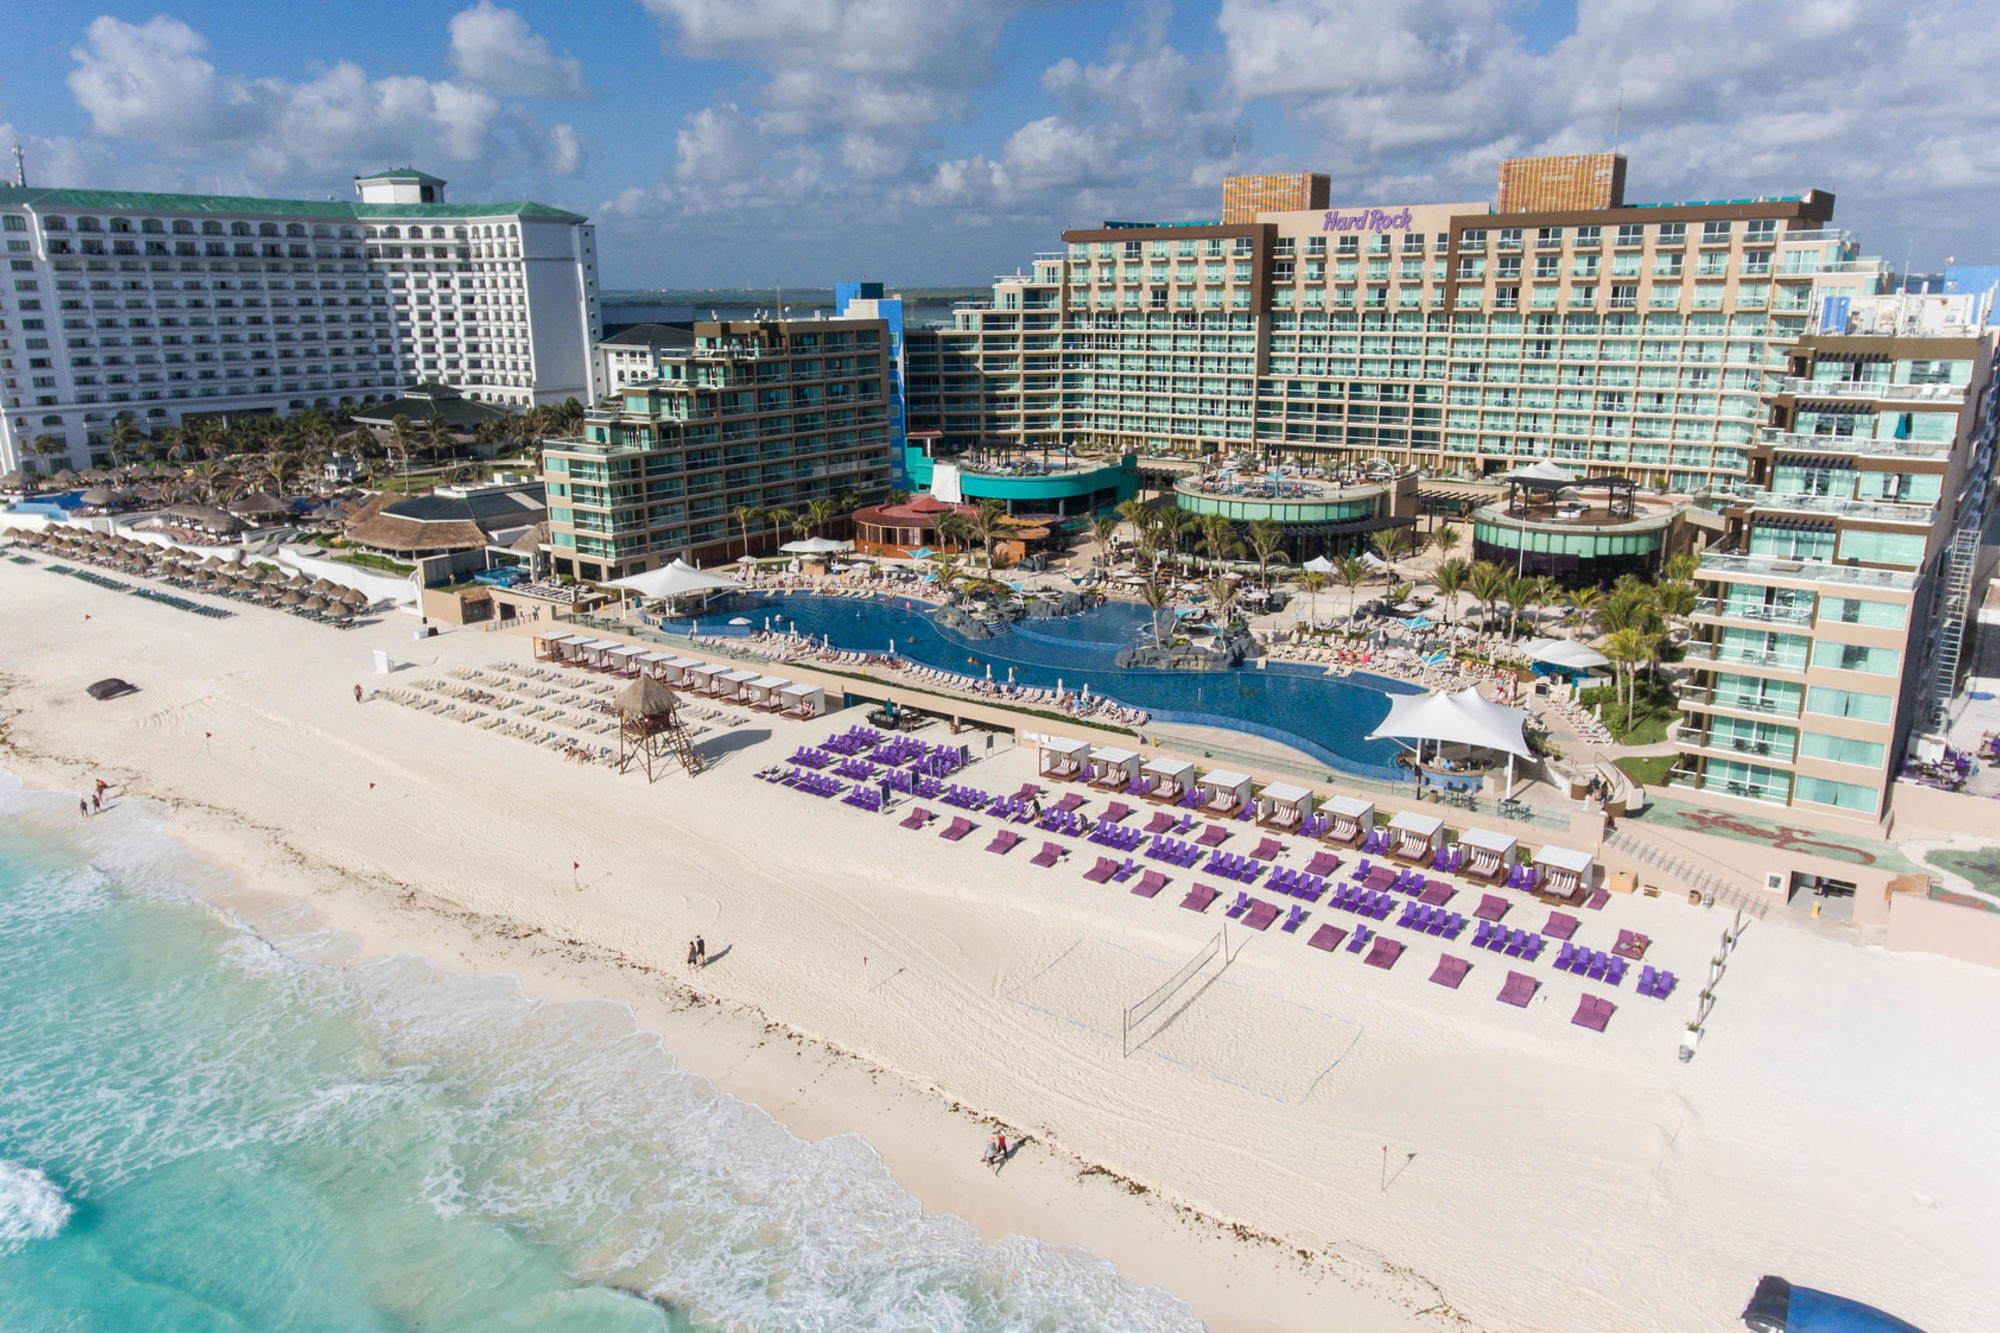 Aerial view of the beach and pools at the Hard Rock Cancun